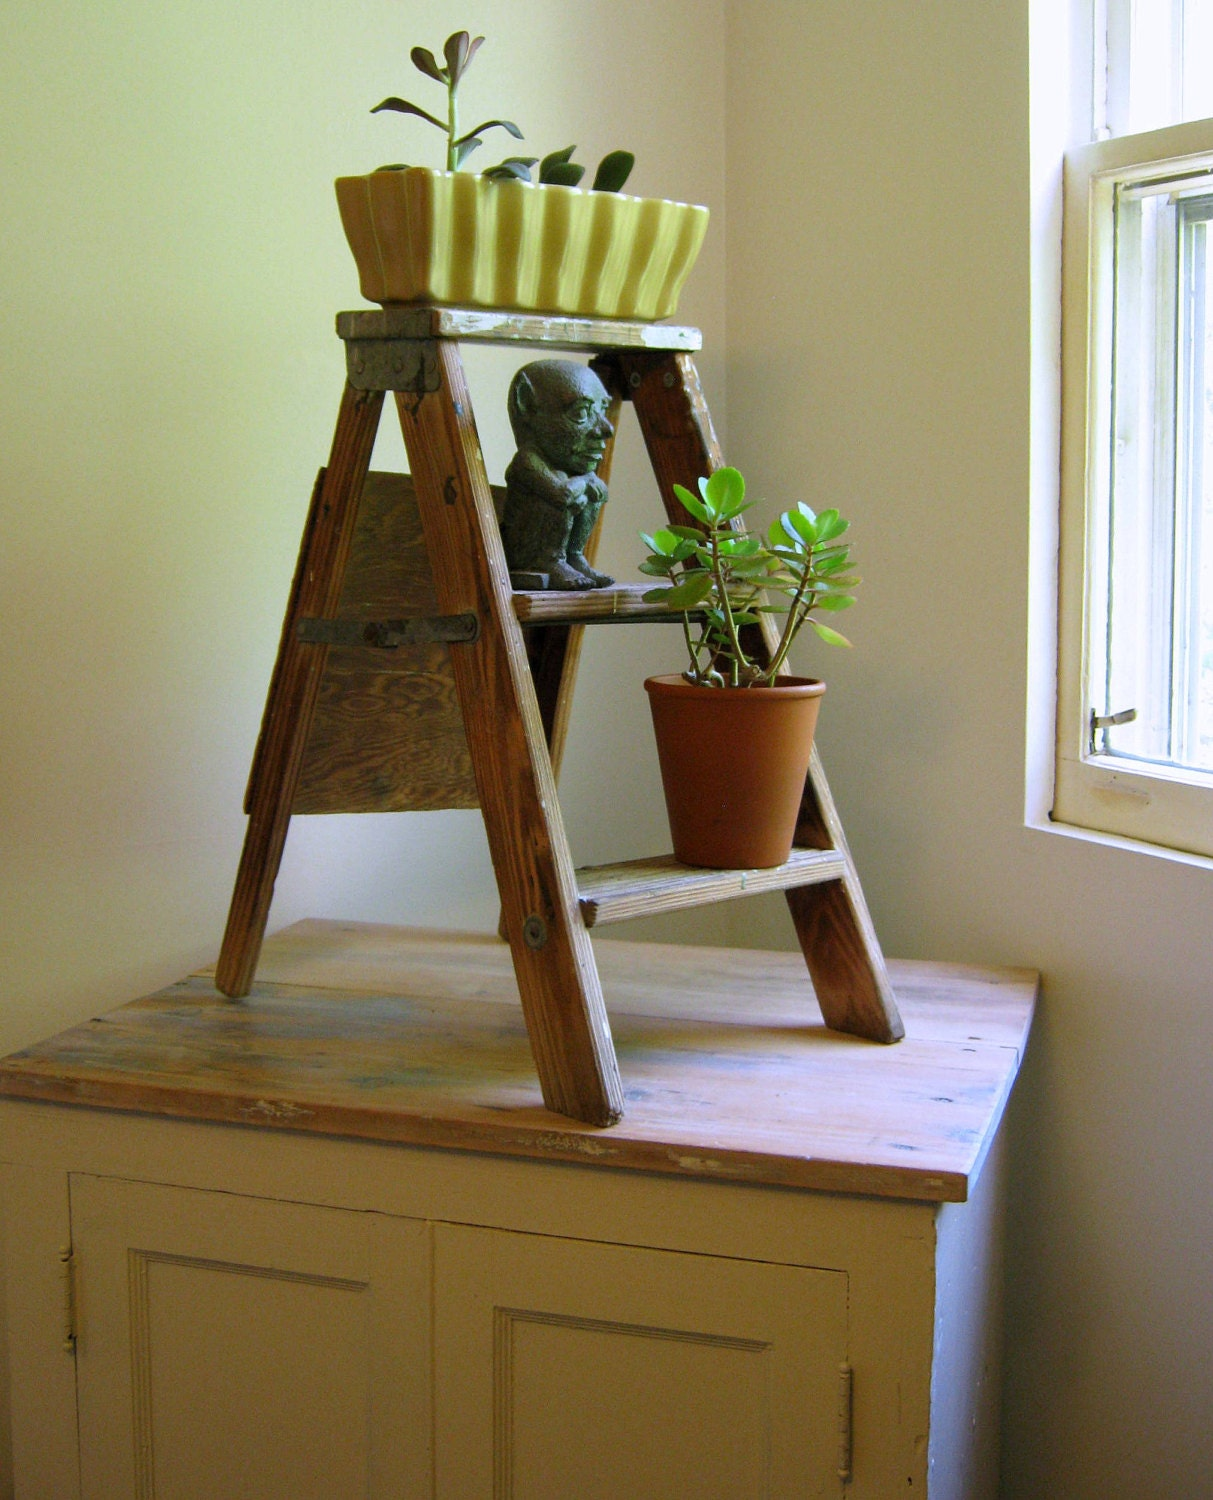 Vintage Step Ladder Wooden Plant Stand by NaturalVintage on Etsy